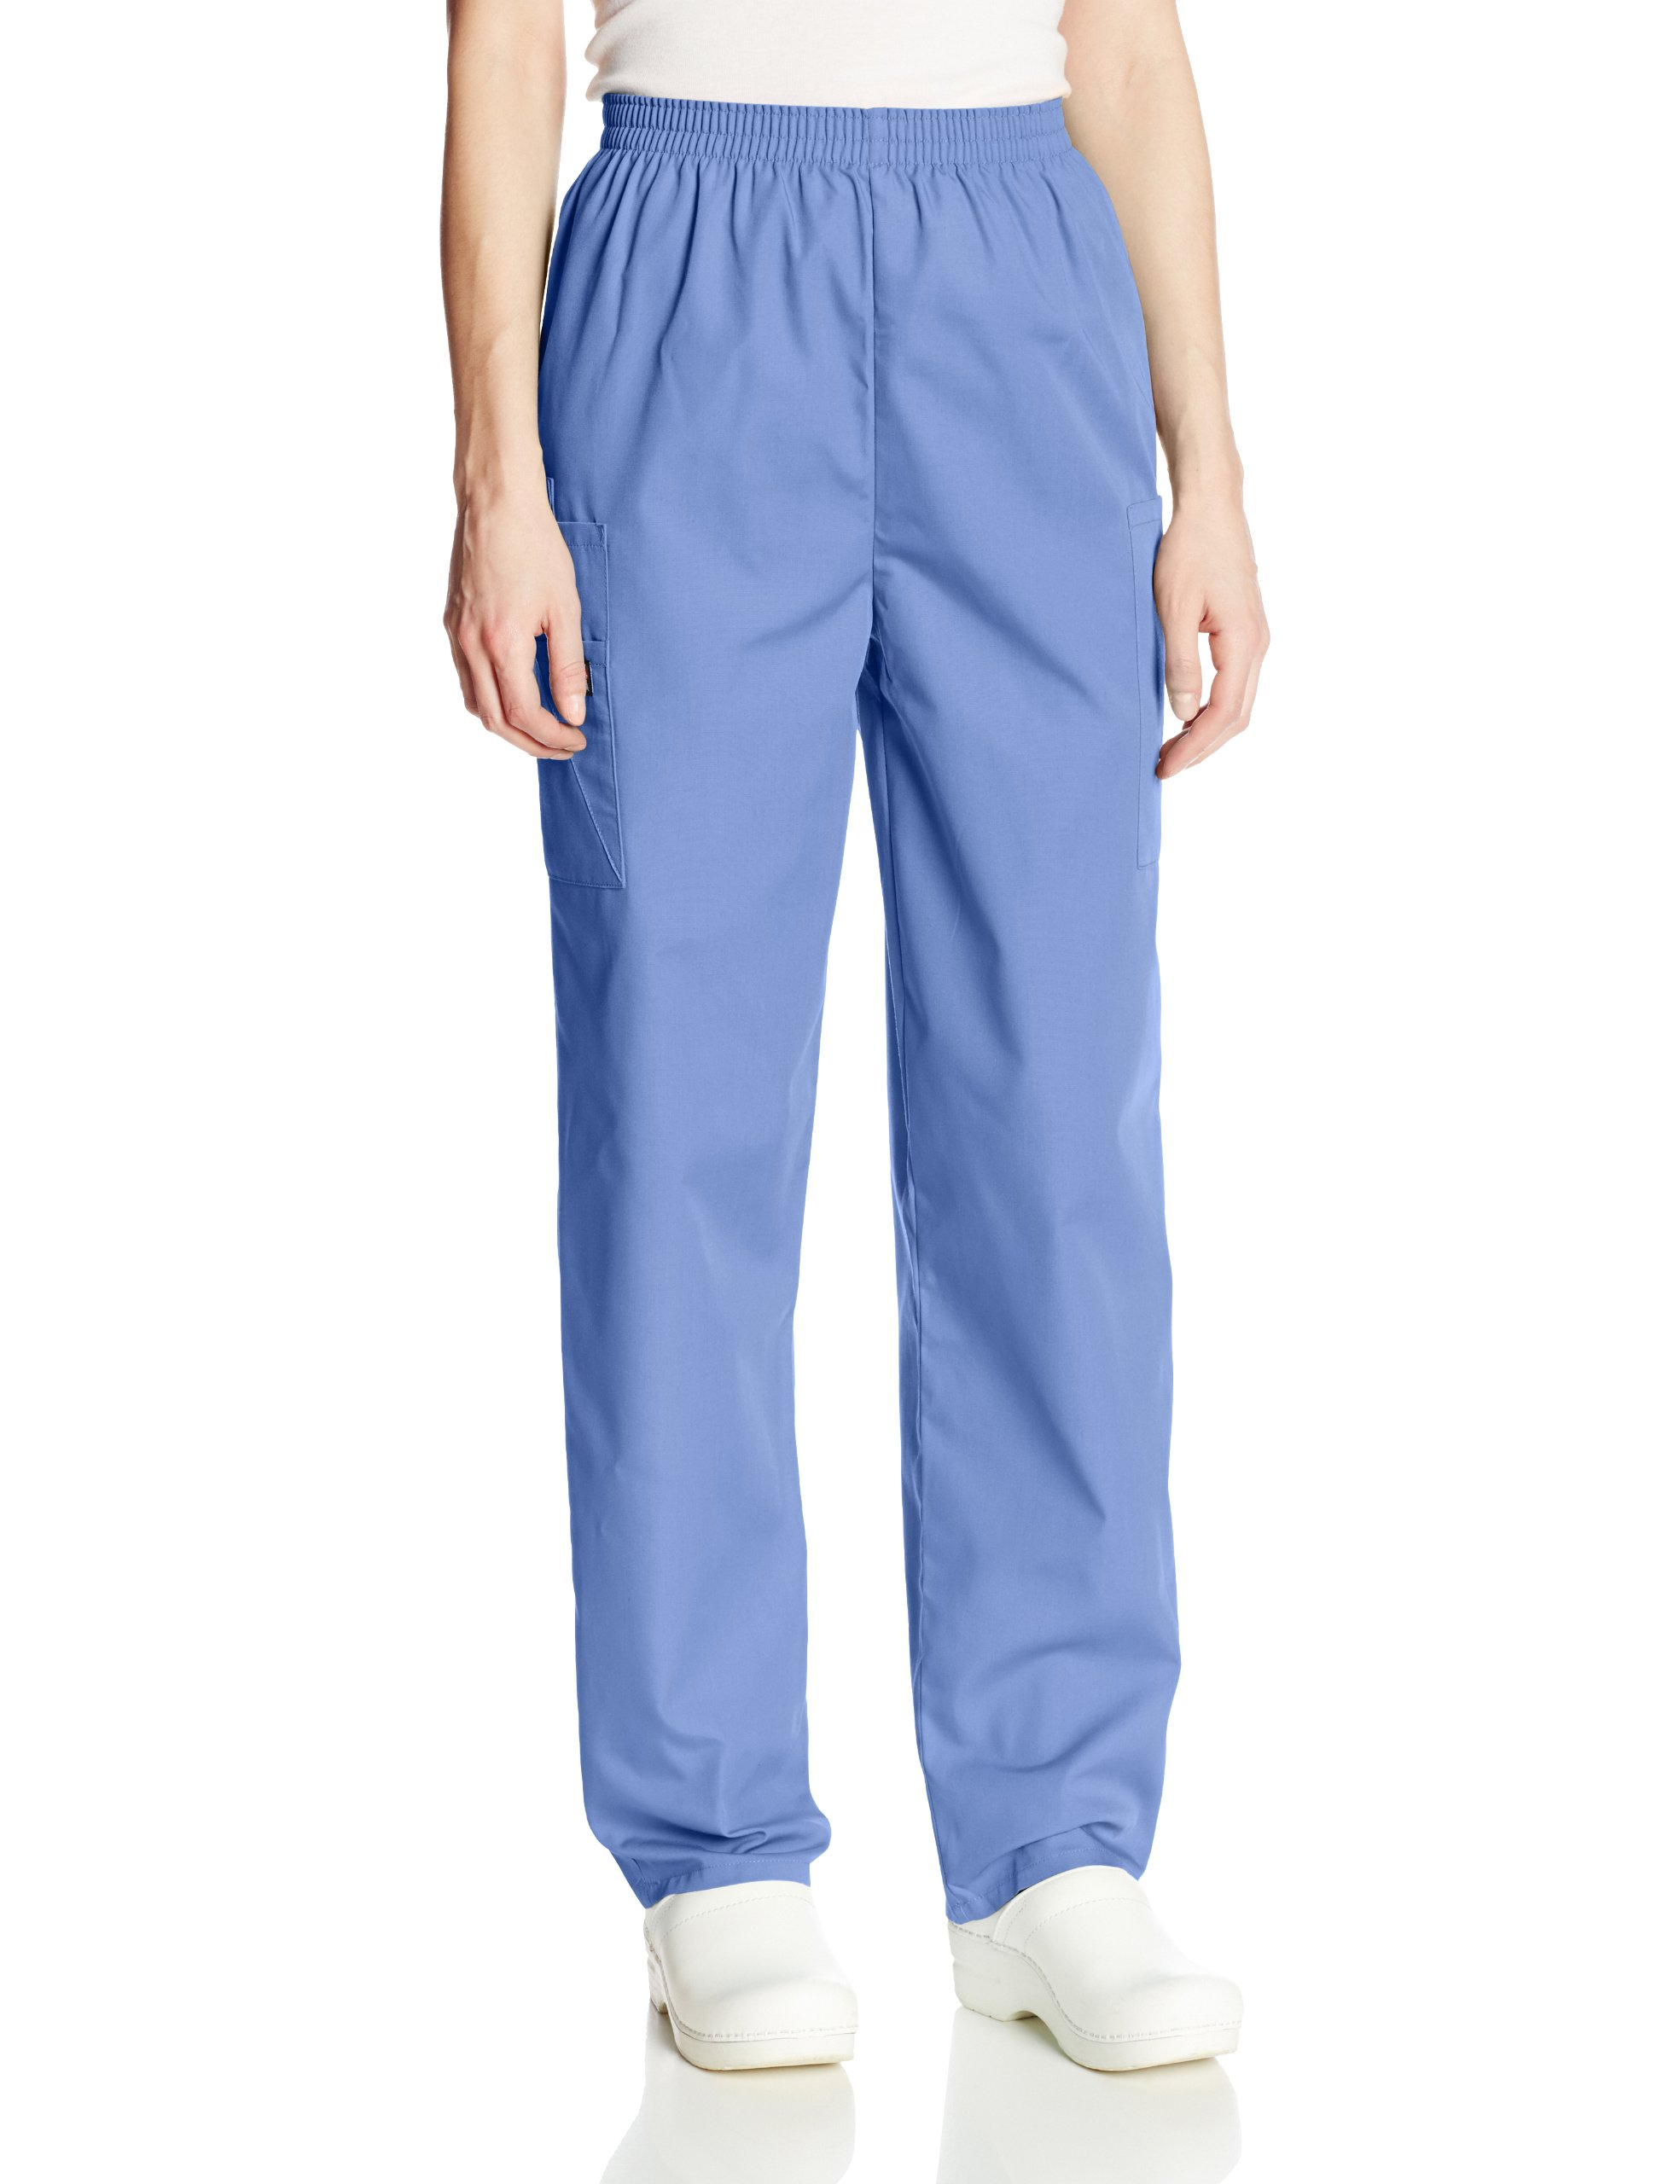 Cherokee Women's Workwear Scrubs Pull-On Cargo Pant, Ciel, Medium